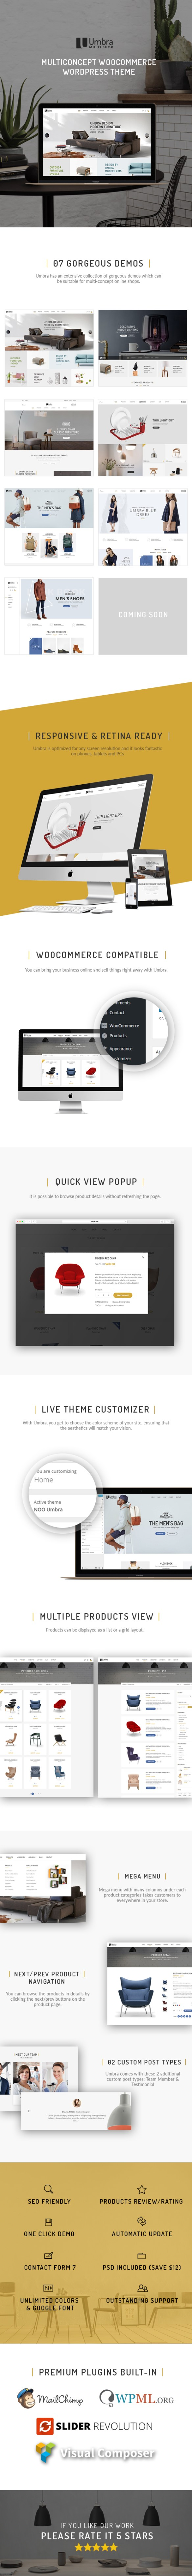 Umbra - Multiconcept WooCommerce WordPress Theme